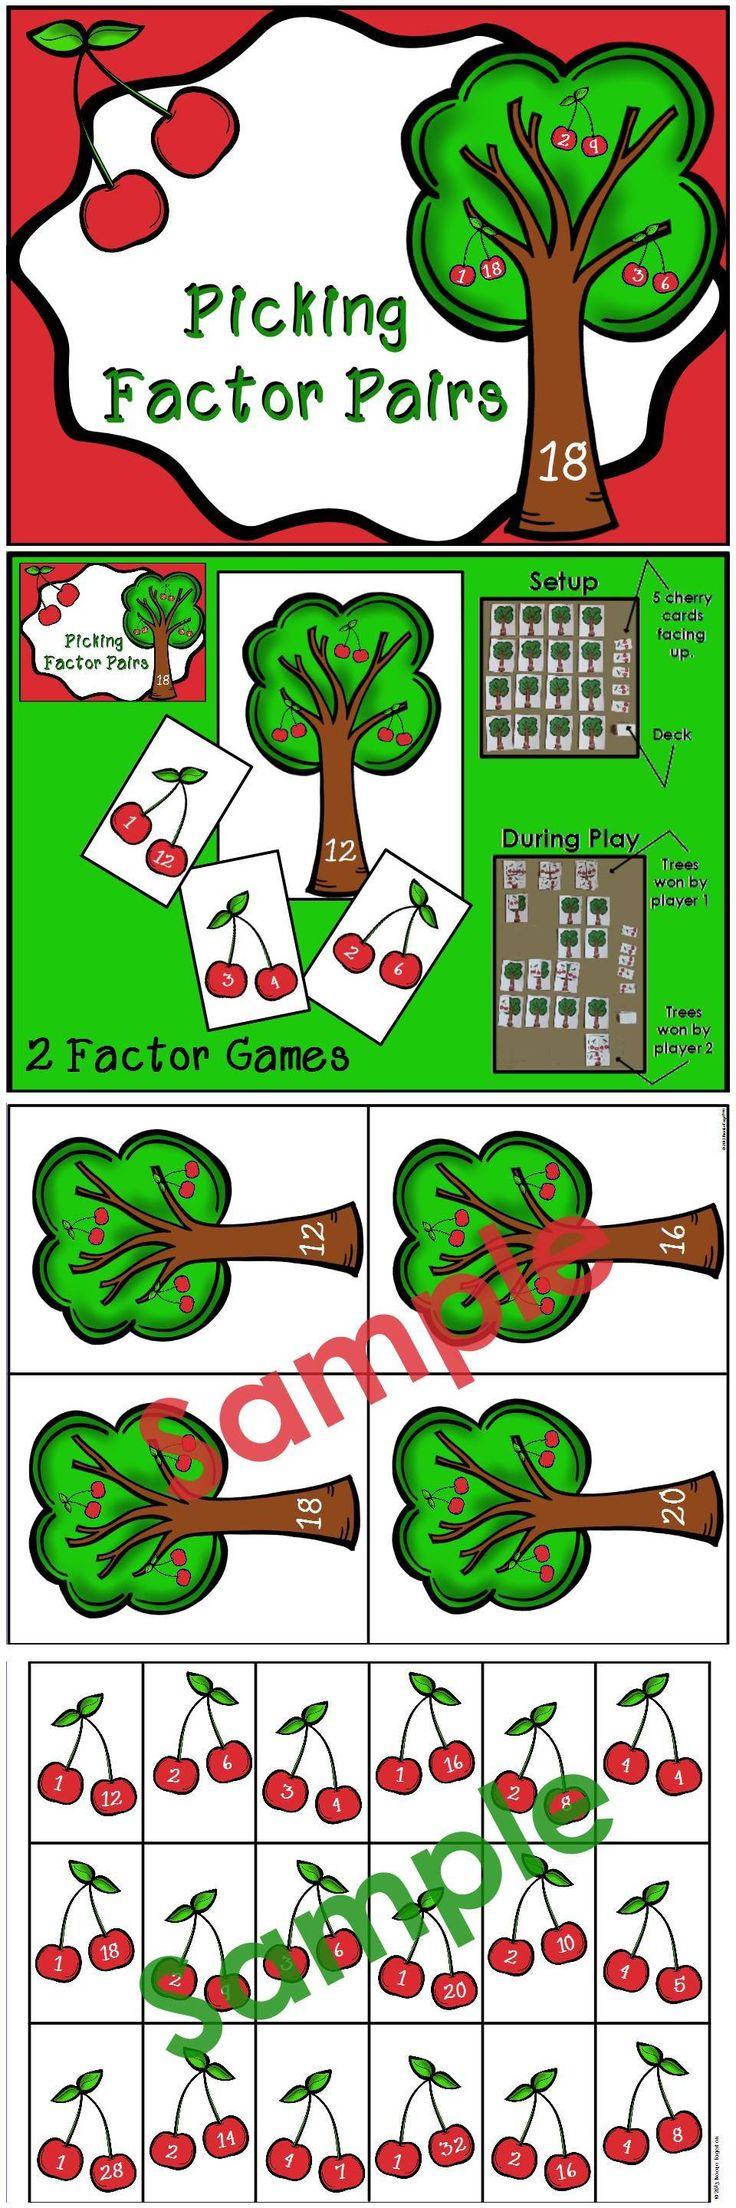 What Are Factor Pairs?